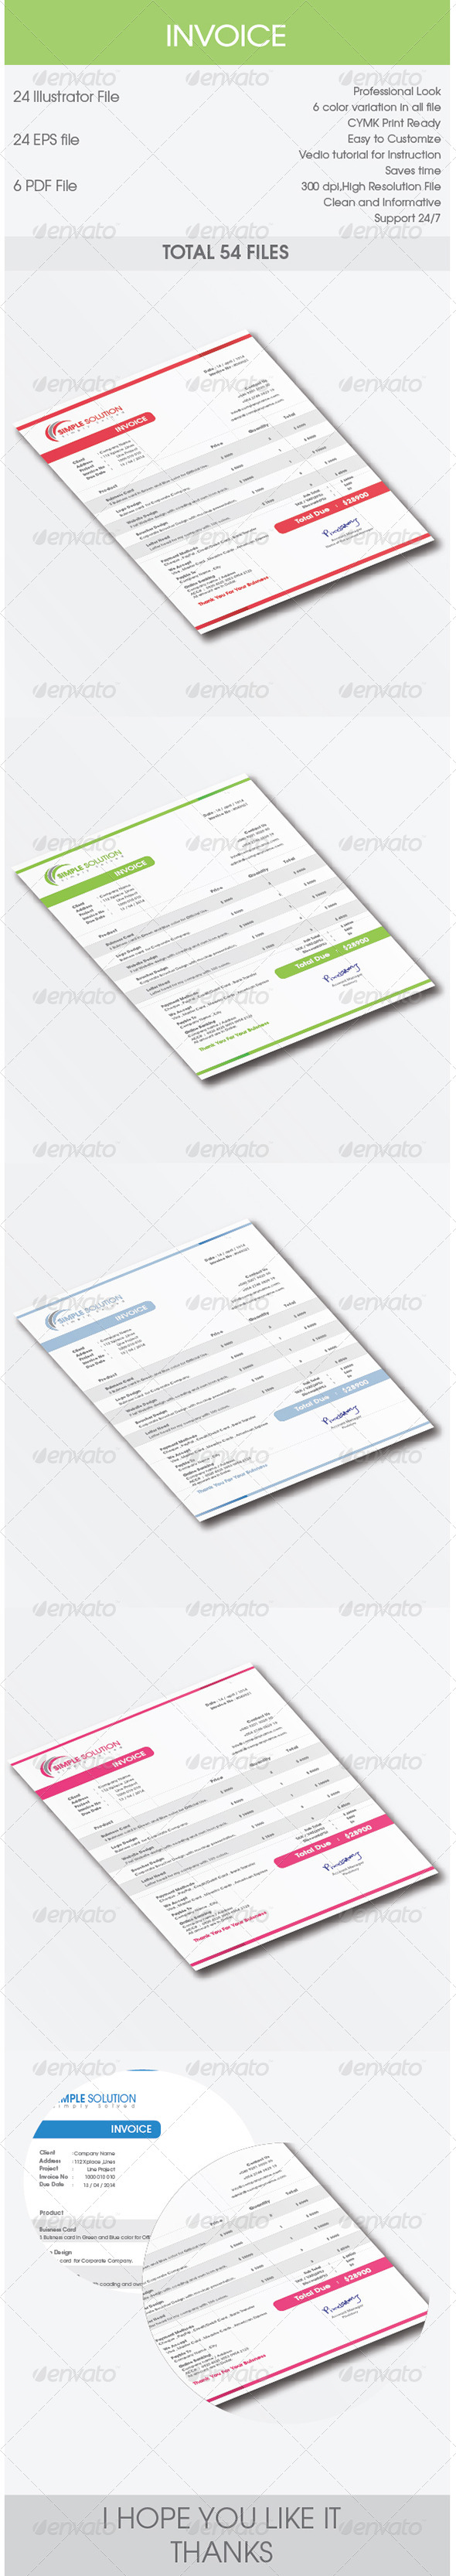 Financial Advisor Receipt Template Word Psd Indesign Apple Mac Pages Publisher Illustrator In 2020 Financial Advisors Receipt Template Financial